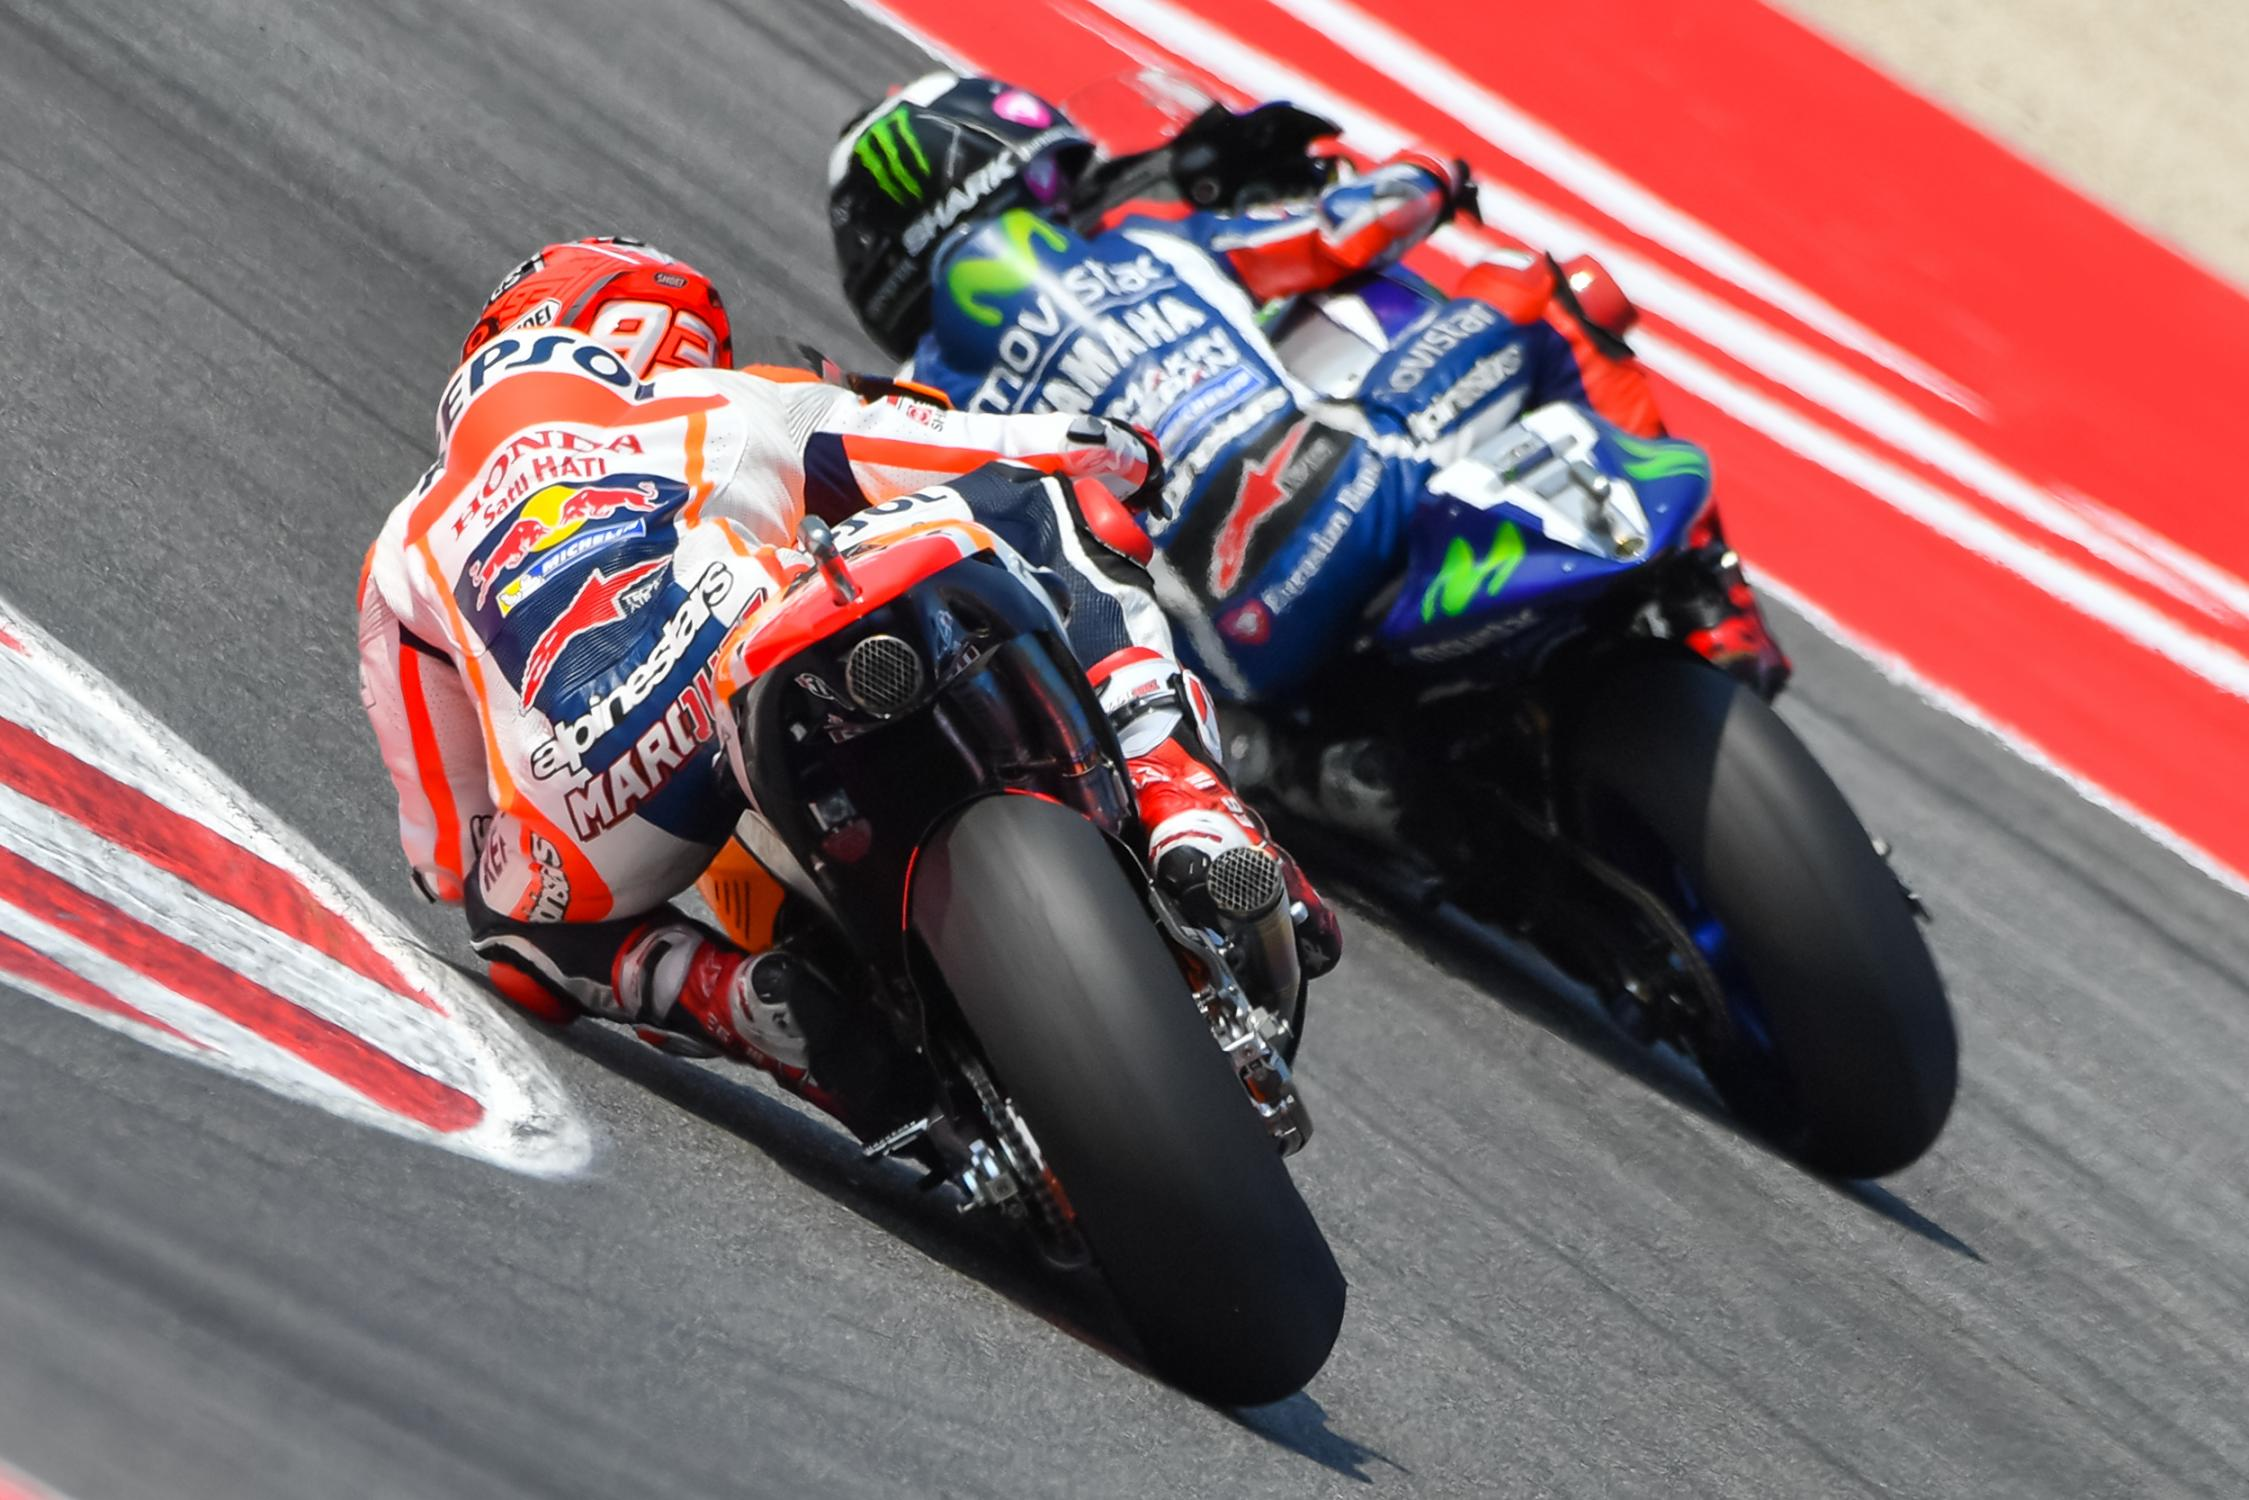 Lorenzo doubtful on beating Rossi to second